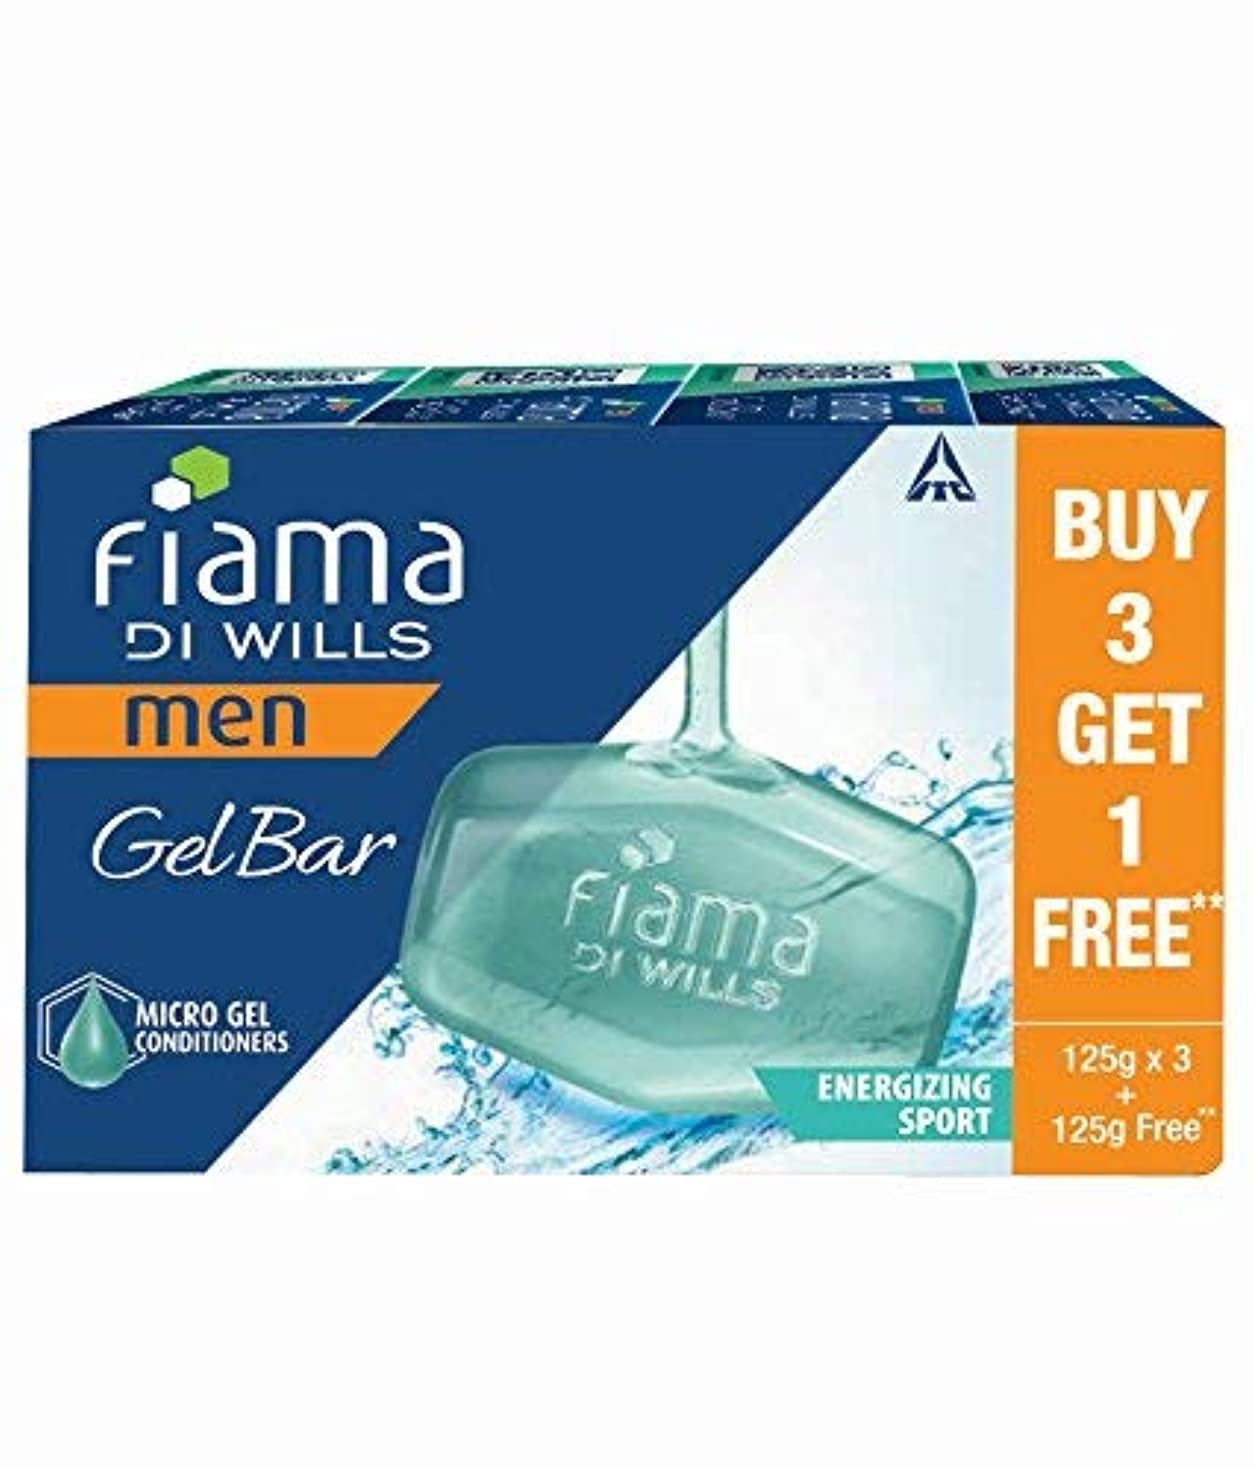 圧縮騙すうなずくFiama Di Wills Men Energizing Sport Gel Bar, 125g (Buy 3 Get 1 Free)